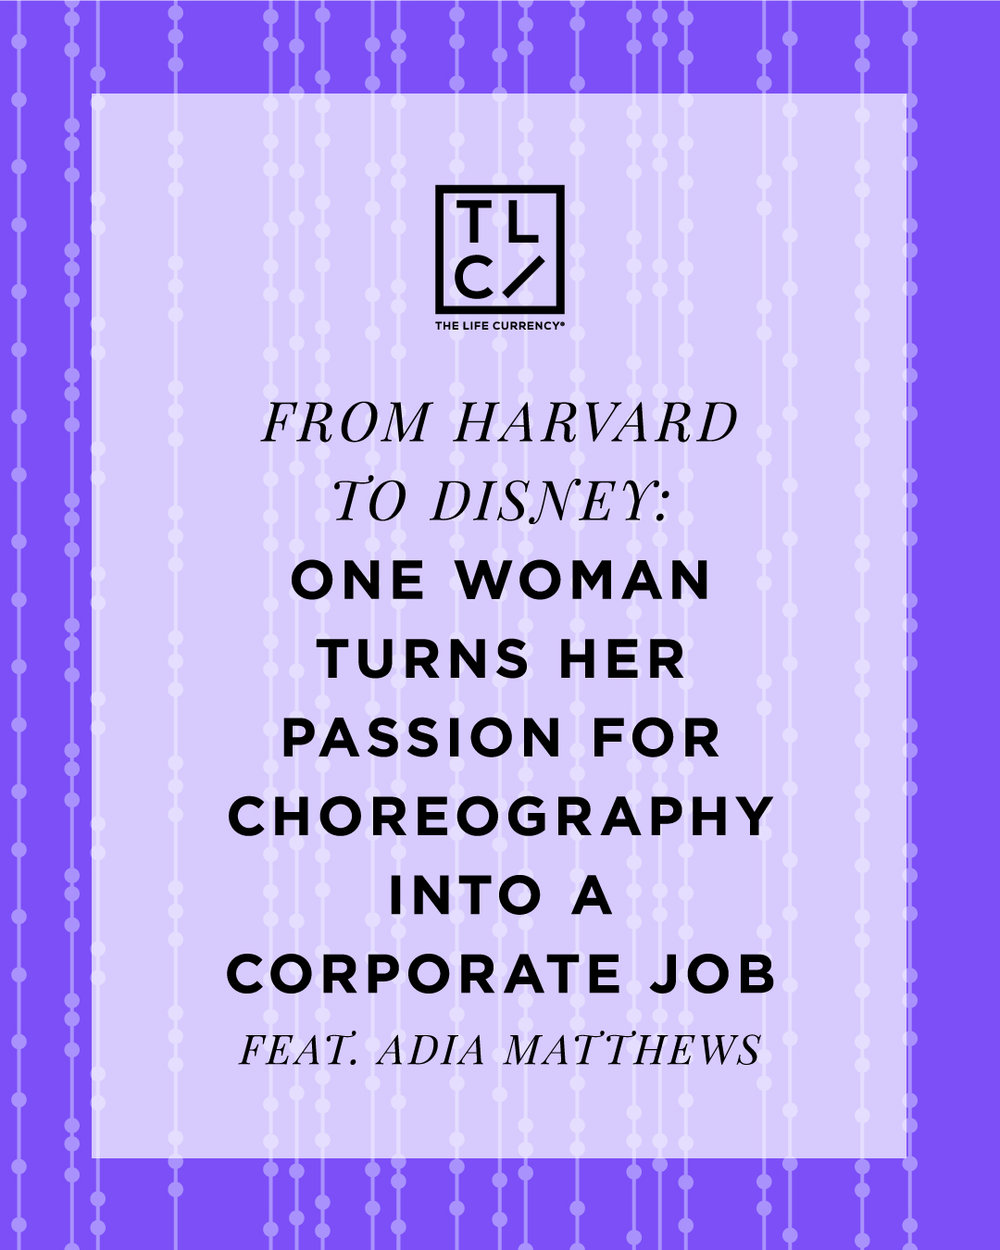 From Harvard to Disney: How One Woman Turned Her Passion for Choreography into a Corporate Job with Adia Matthews